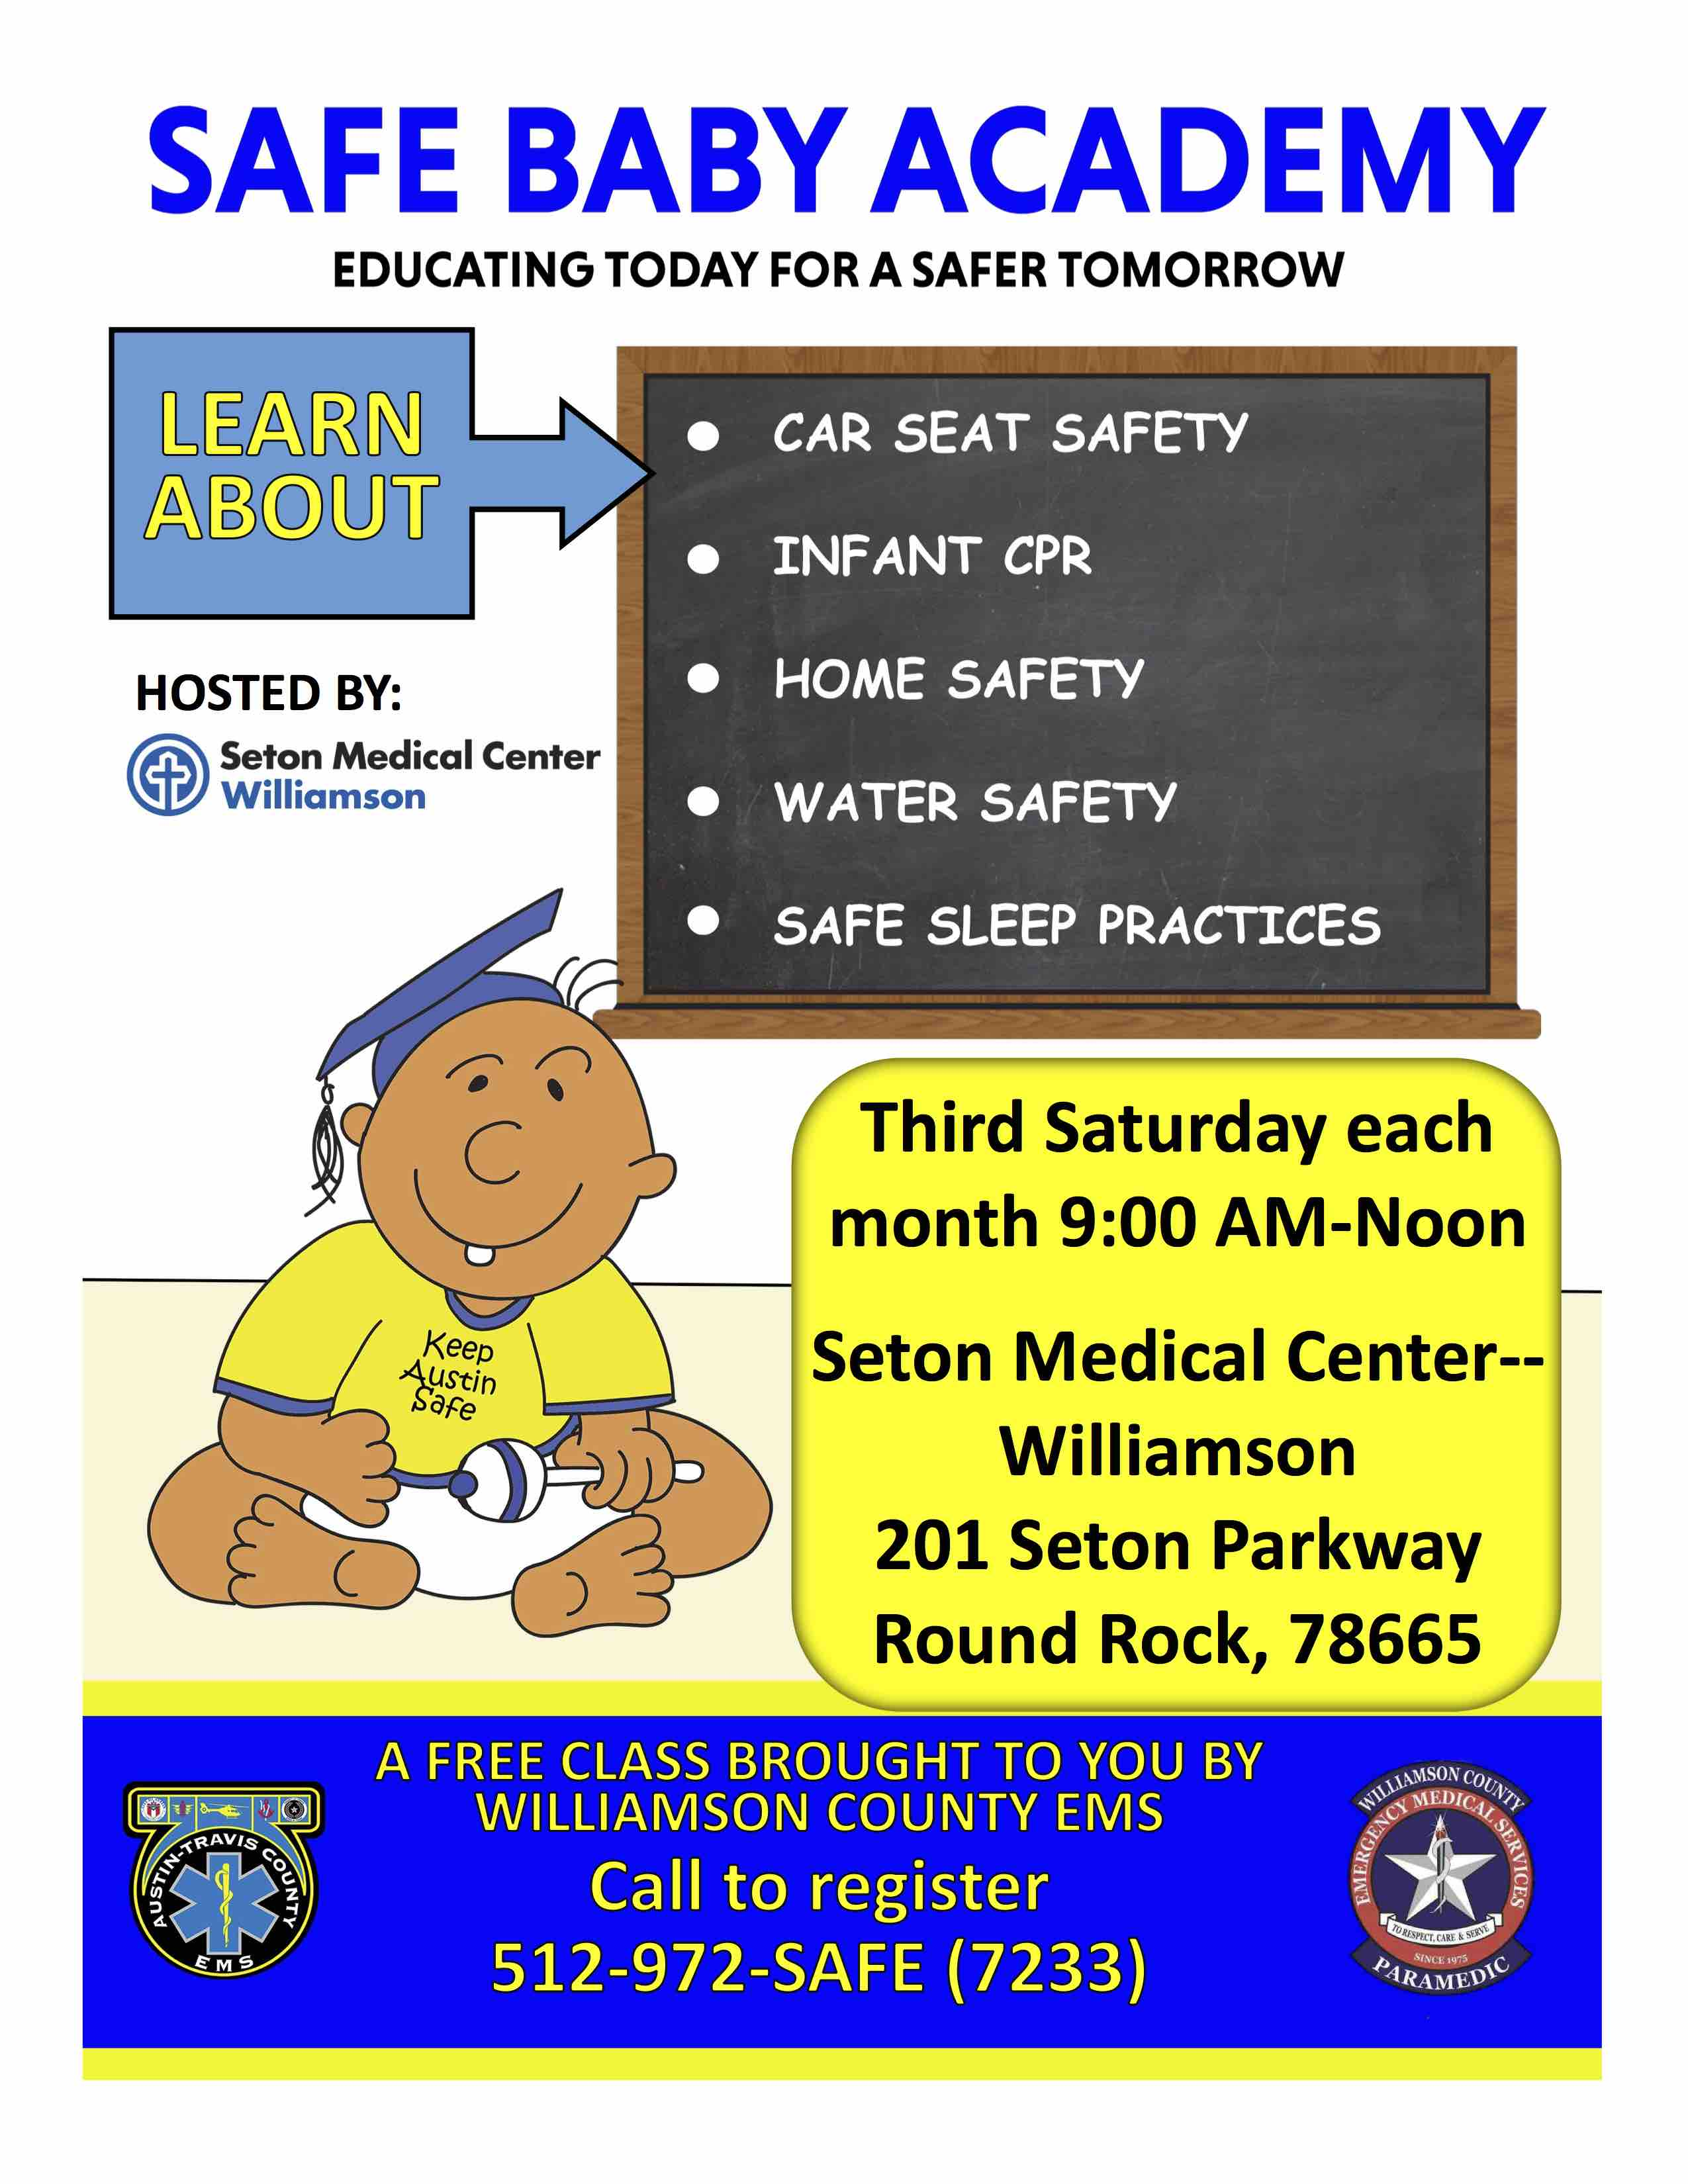 sba wilco seton williamson flyer[4]